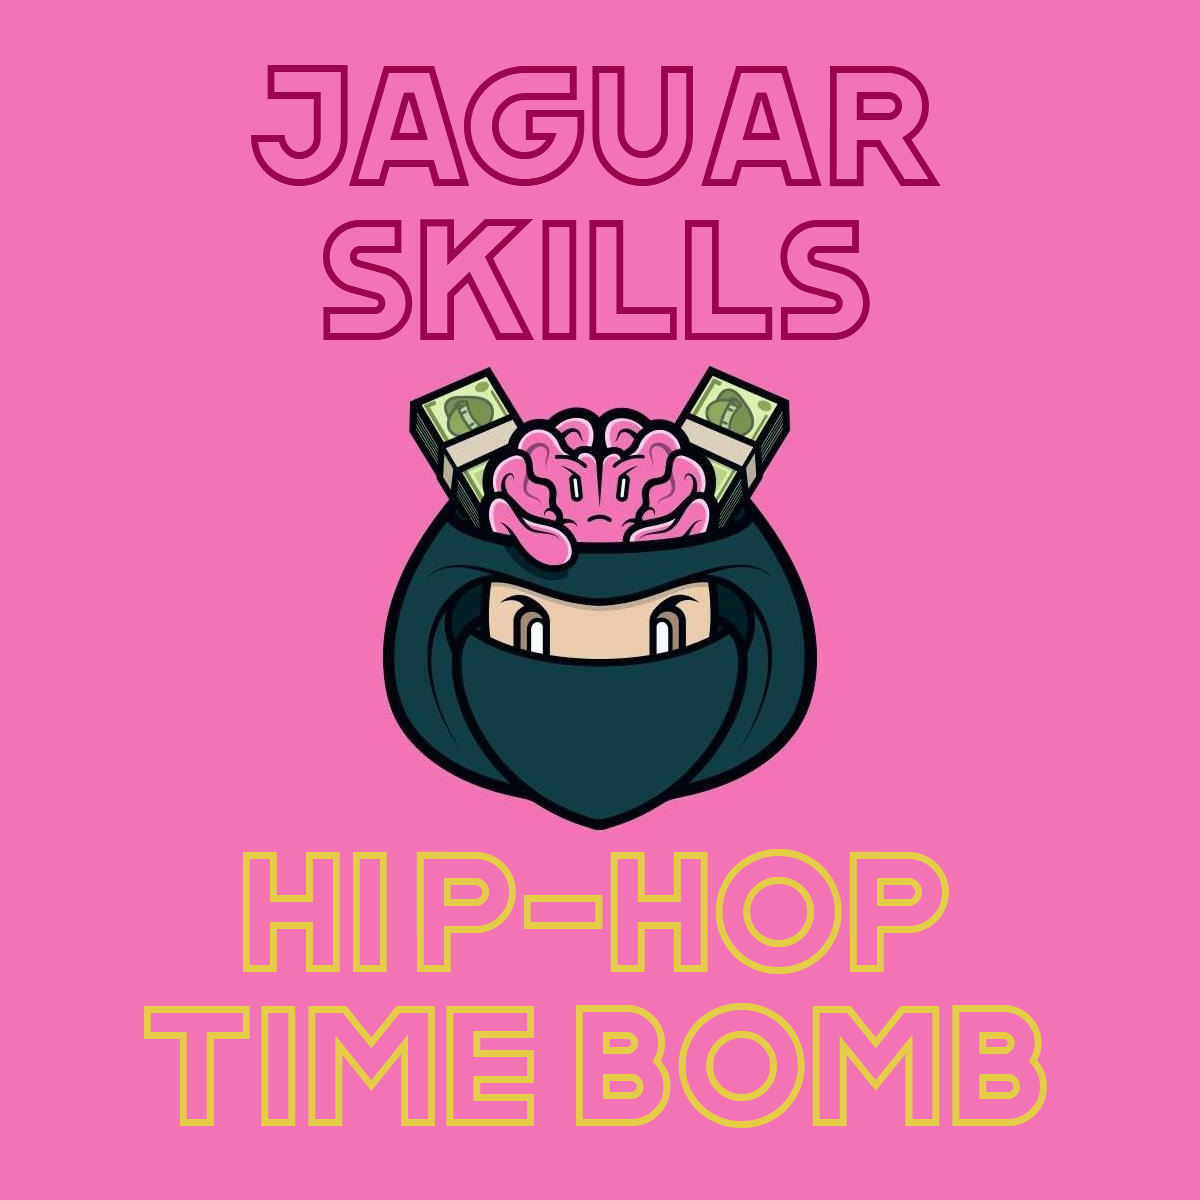 JAGUAR SKILLS HIP-HOP TIME BOMB | 1983 - 1990/91 - 2000 - 2010 MUSIKGESCHICHTE ALS MIXTAPES